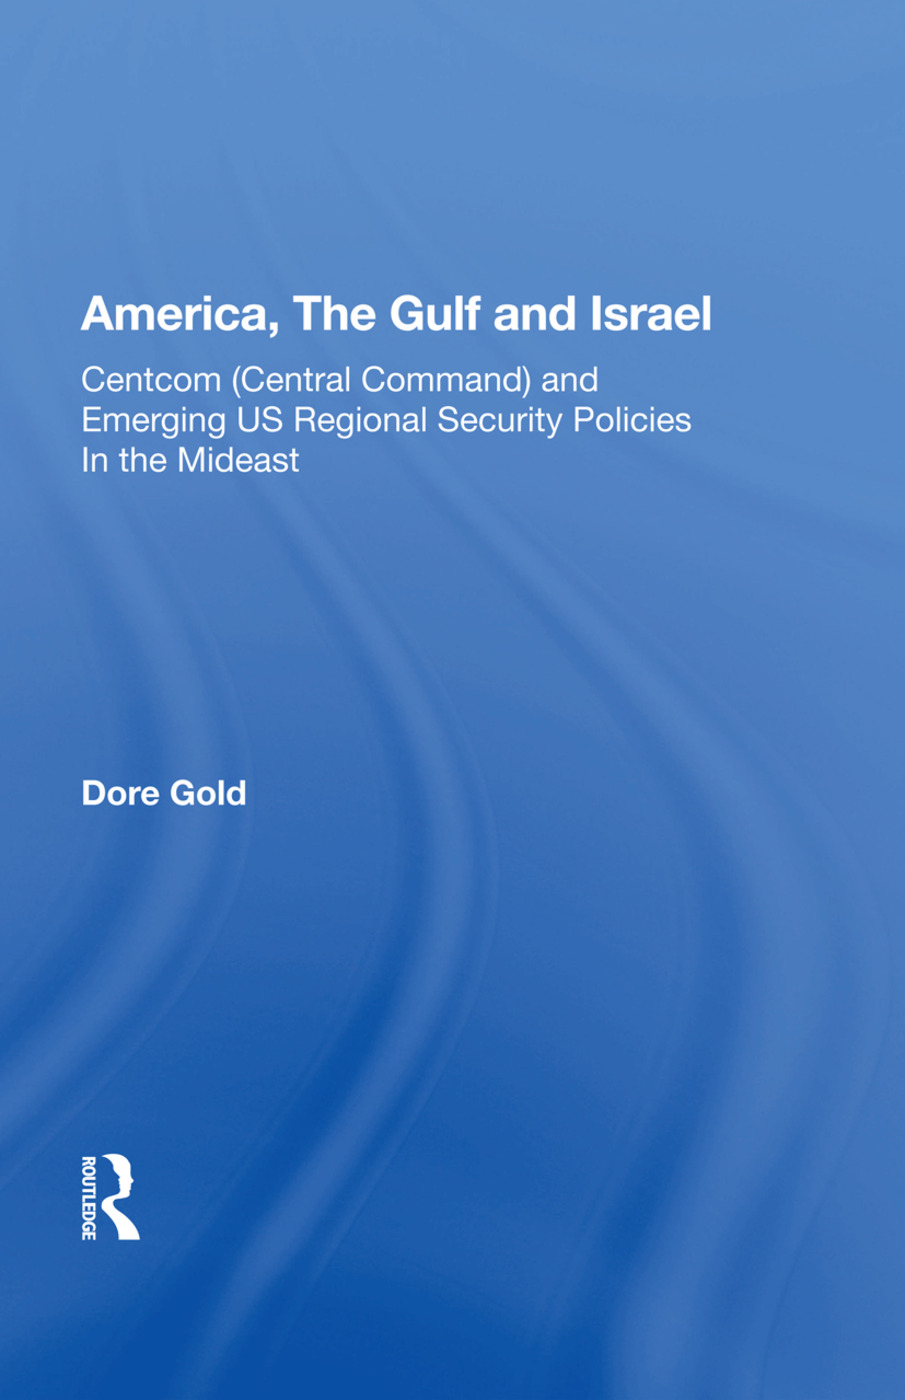 America, The Gulf, And Israel: Centcom (central Command) And Emerging U.s. Regional Security Policies In The Middle East, 1st Edition (Paperback) book cover